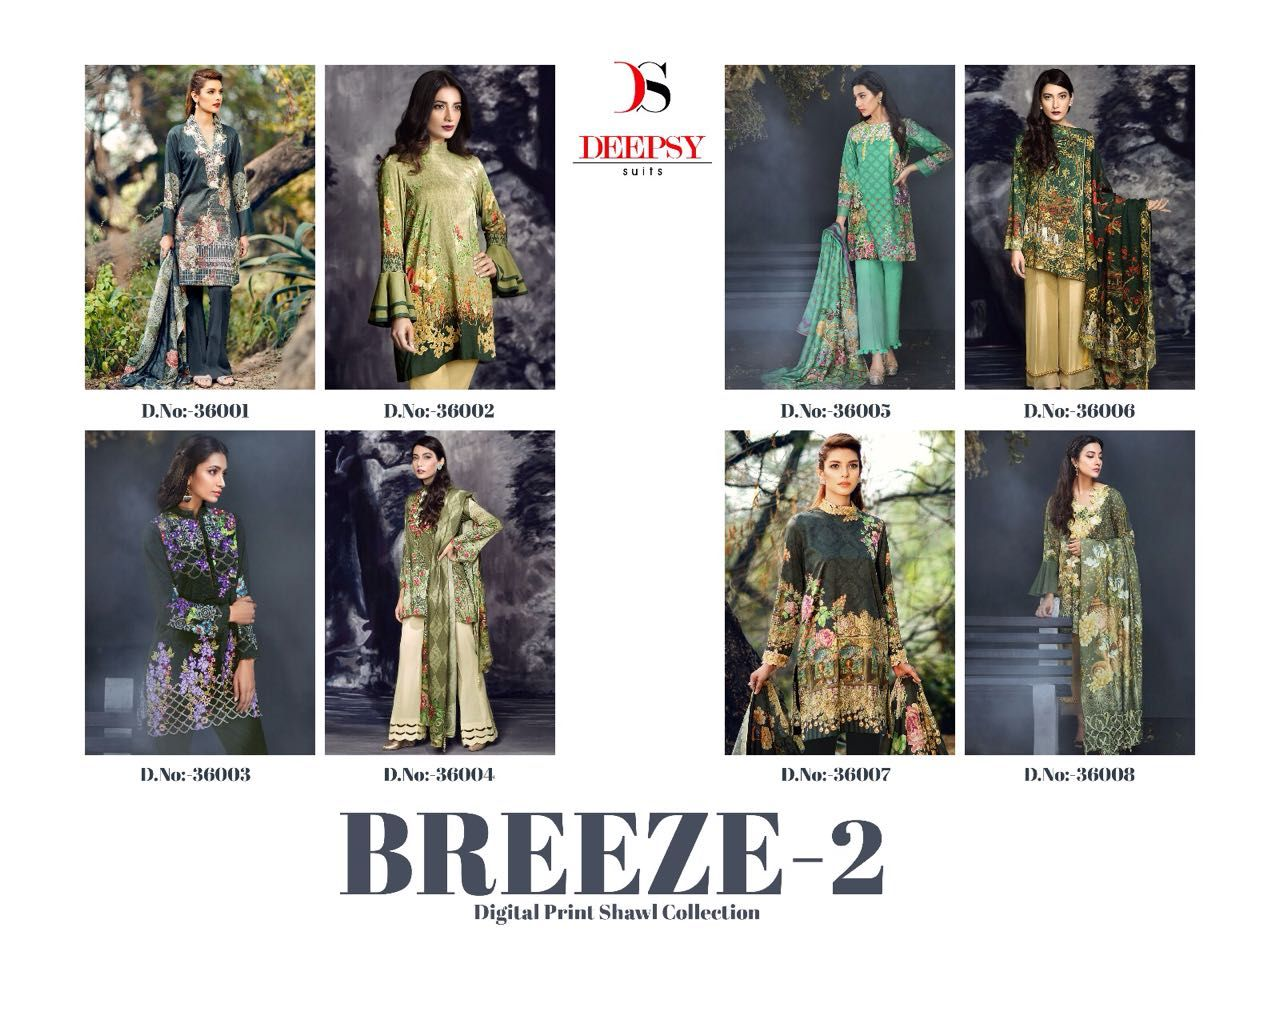 Brand name:- #Deepsy. Catalog name:- #Breeze-2. Set to set only.  www.thestyle.in  For Inquiry and Order : #WhatsApp +917878817191   #Deepsy #Breeze-2.#36001to36008Series #Wholesale Salwar Kameez #Salwar Suits manufacturer #Wholesale Salwar Suits #Salwar Kameez Manufacturer #Casual Suits #Anarkali Suits #Gowns #Straight Suits #Sherwani Suits #Designer Suits #Printed Suits #Wedding Wear Suits #Digital Printed Suits #PartyWear Suits #Cotton Suits #Georgette Suits #Silk Suits #Chanderi Suits #…